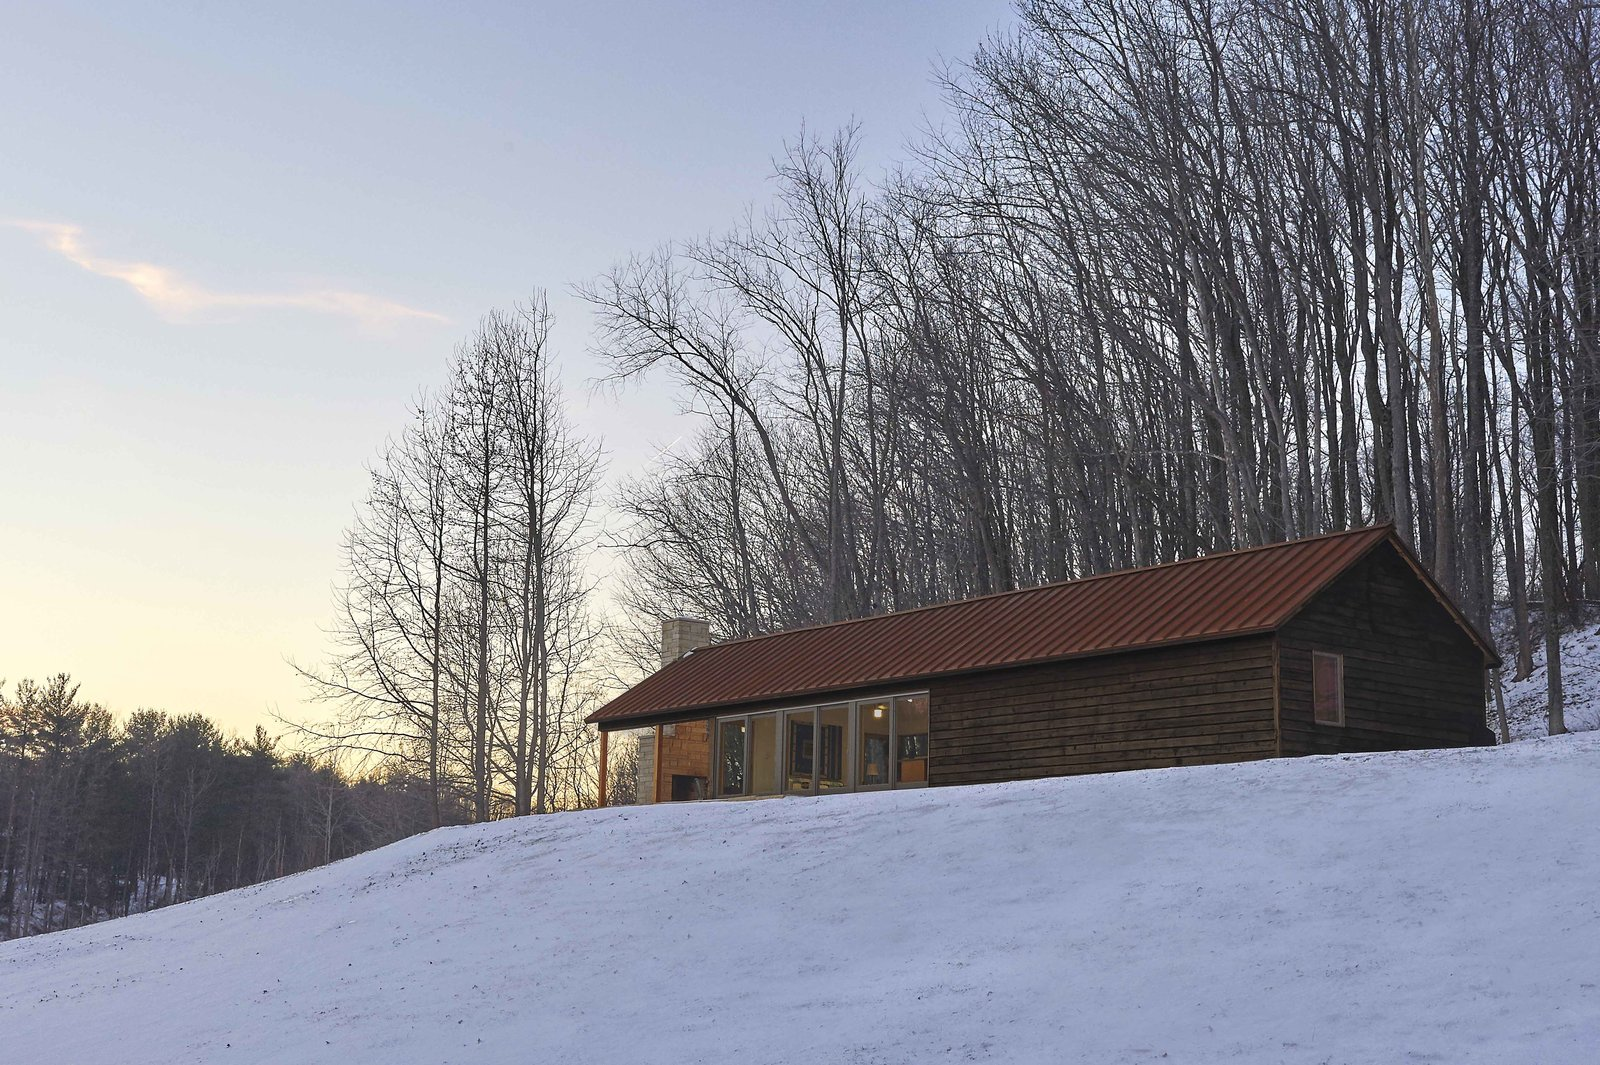 Durability was an important factor in the building's exterior. The architect selected materials, such as weathering steel for the roof and charred cedar for the siding, which would age gracefully. The deep browns and reds also blend into the forested landscape.  Off-Grid Retreat by Zachary Edelson